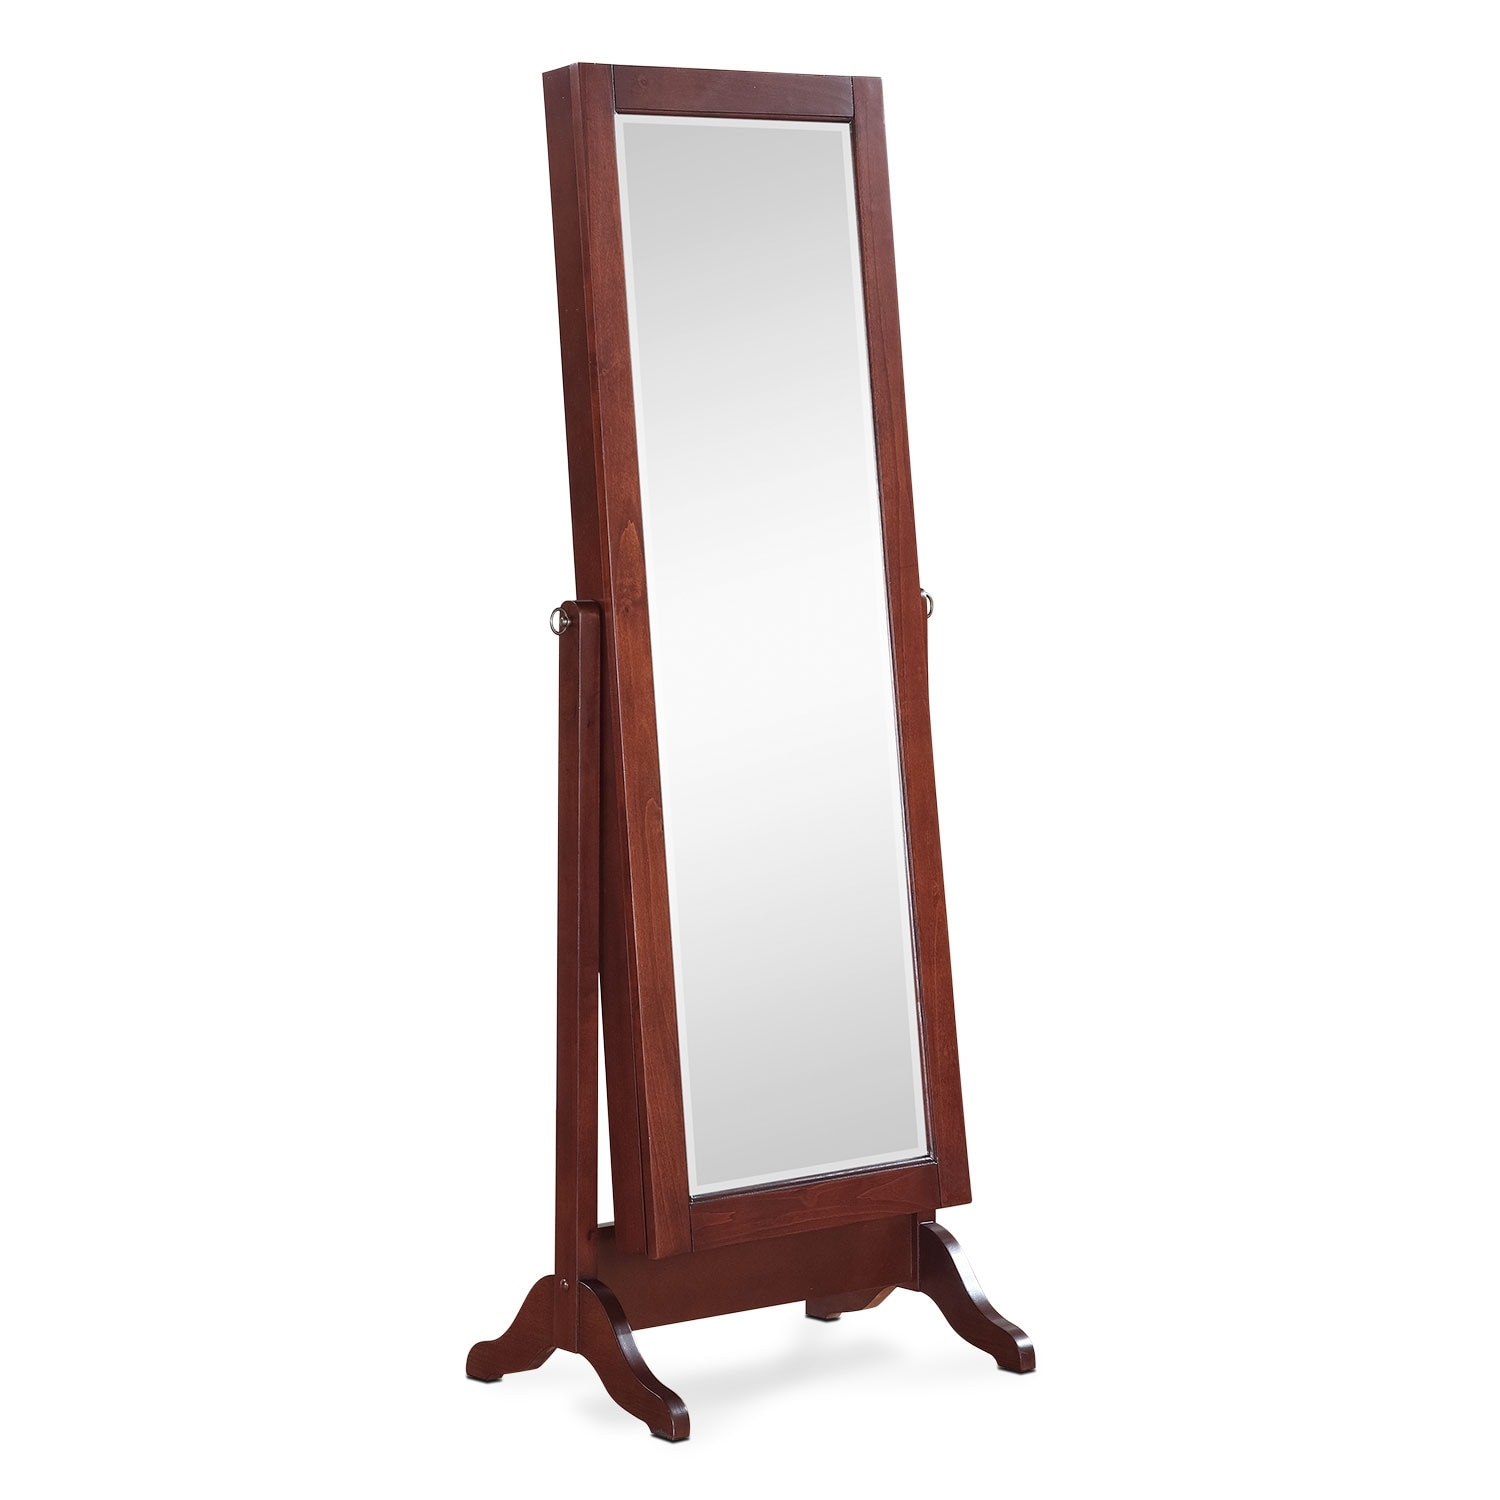 Bedroom Furniture - Loren Cheval Storage Mirror - Cherry